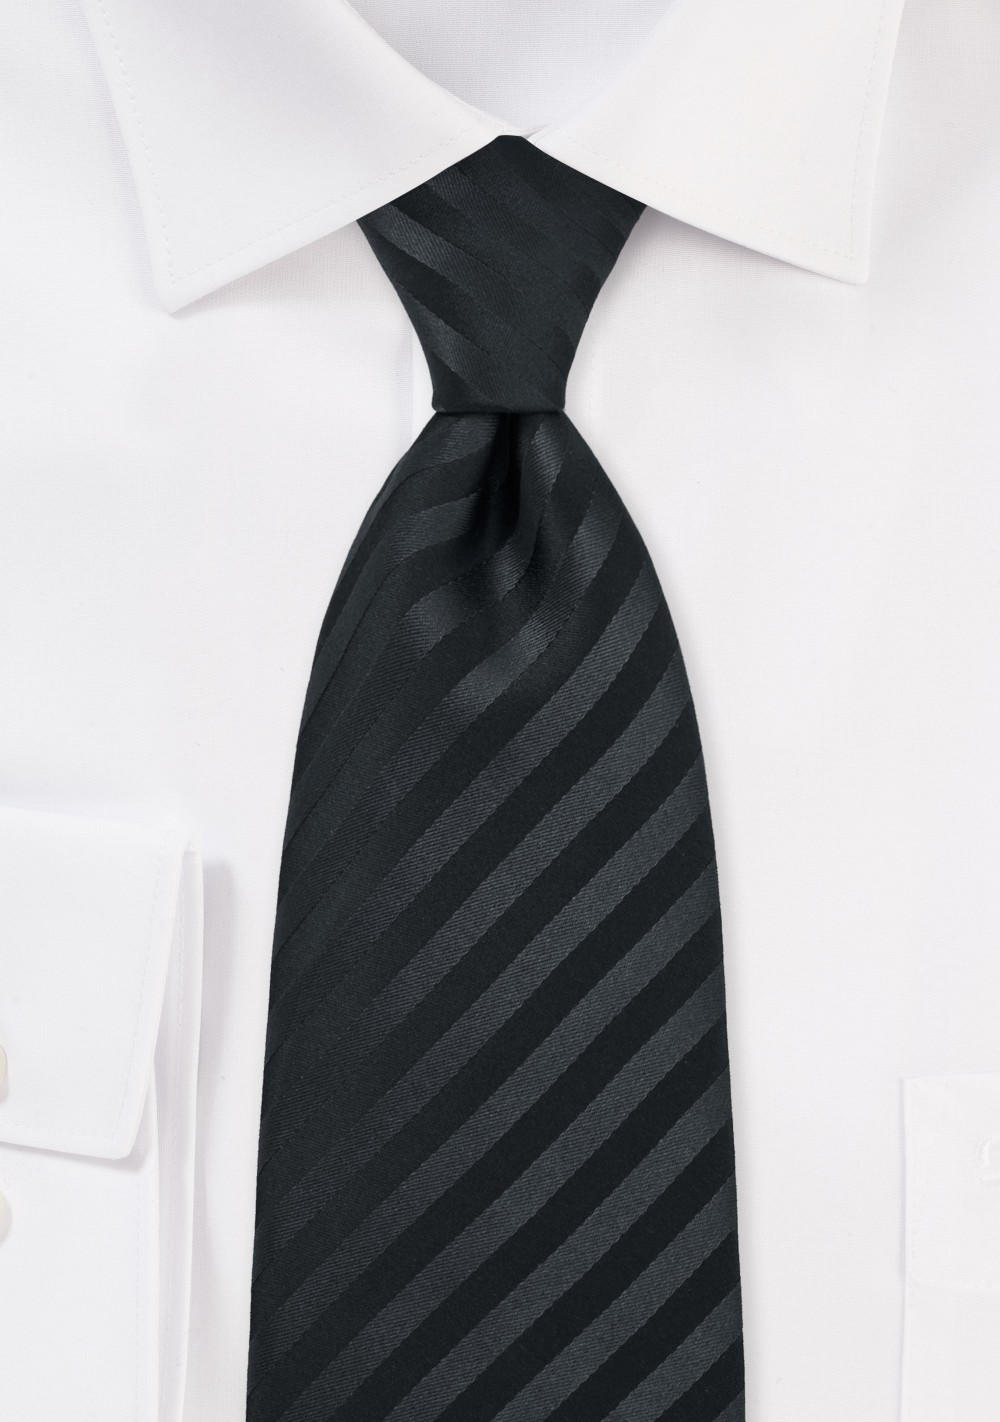 Elegant Black Tie for Kids